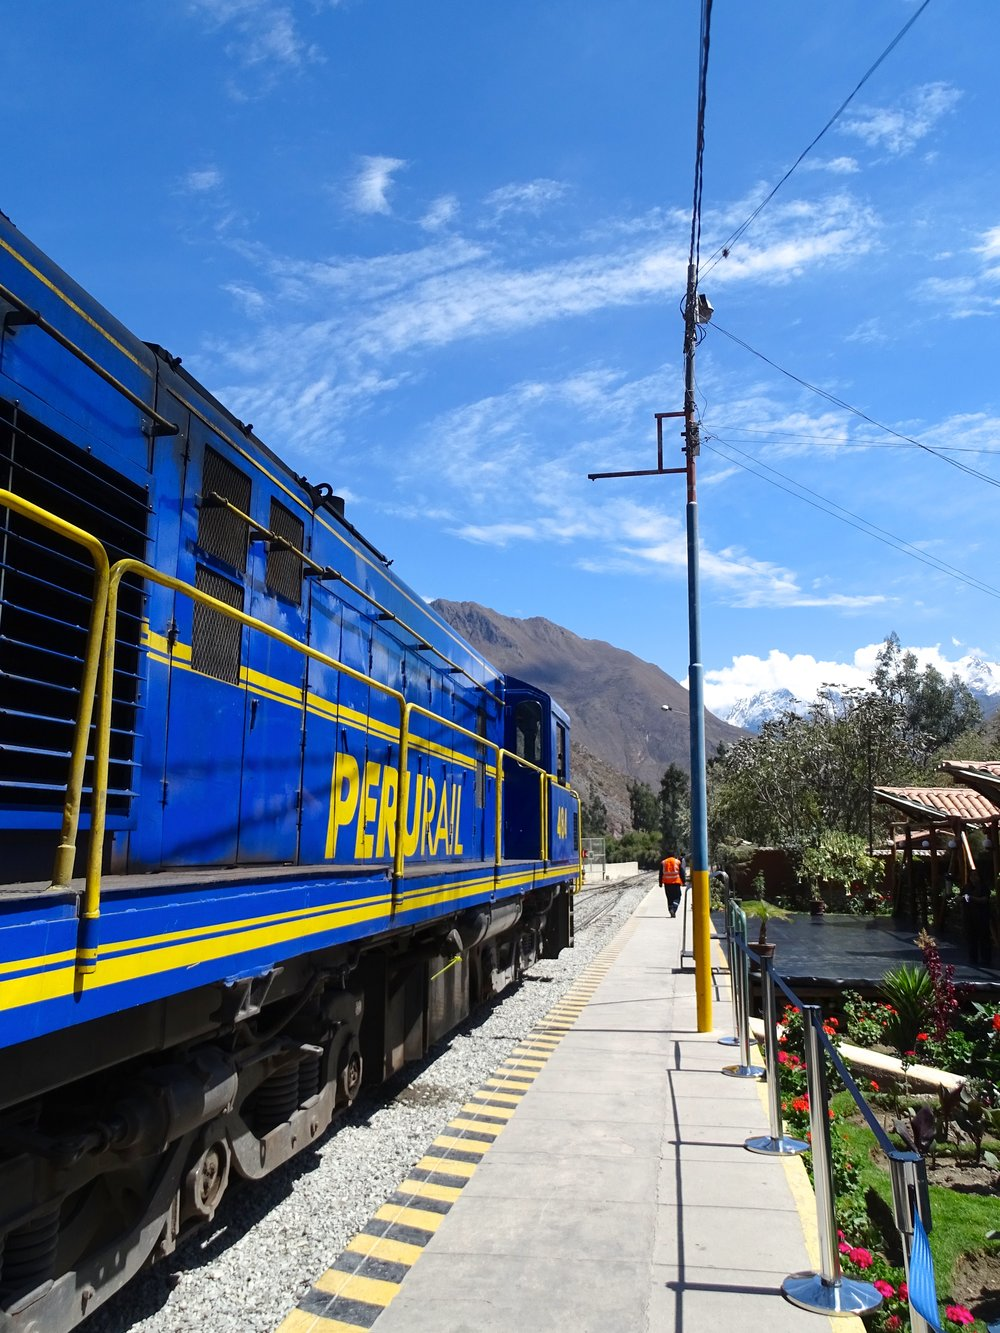 The Perurail Hiram Bingham Express to Machu Picchu